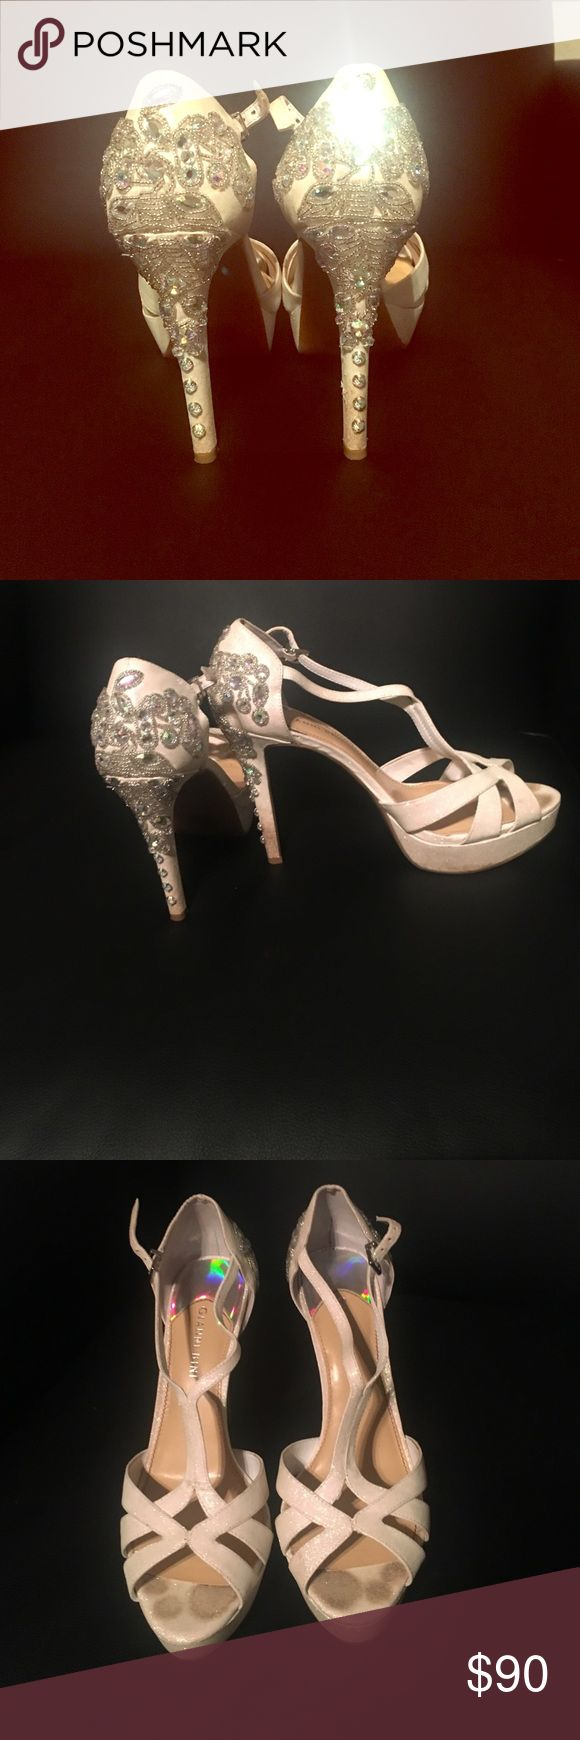 ✨ Gianni Bini heels ✨ Gorgeous white heels! Still in box! Only worn once for prom! They do have toe prints on them and a little dirt on the bottom of the heel just because I walked around in them all day but easily cleaned! Gianni Bini Shoes Heels